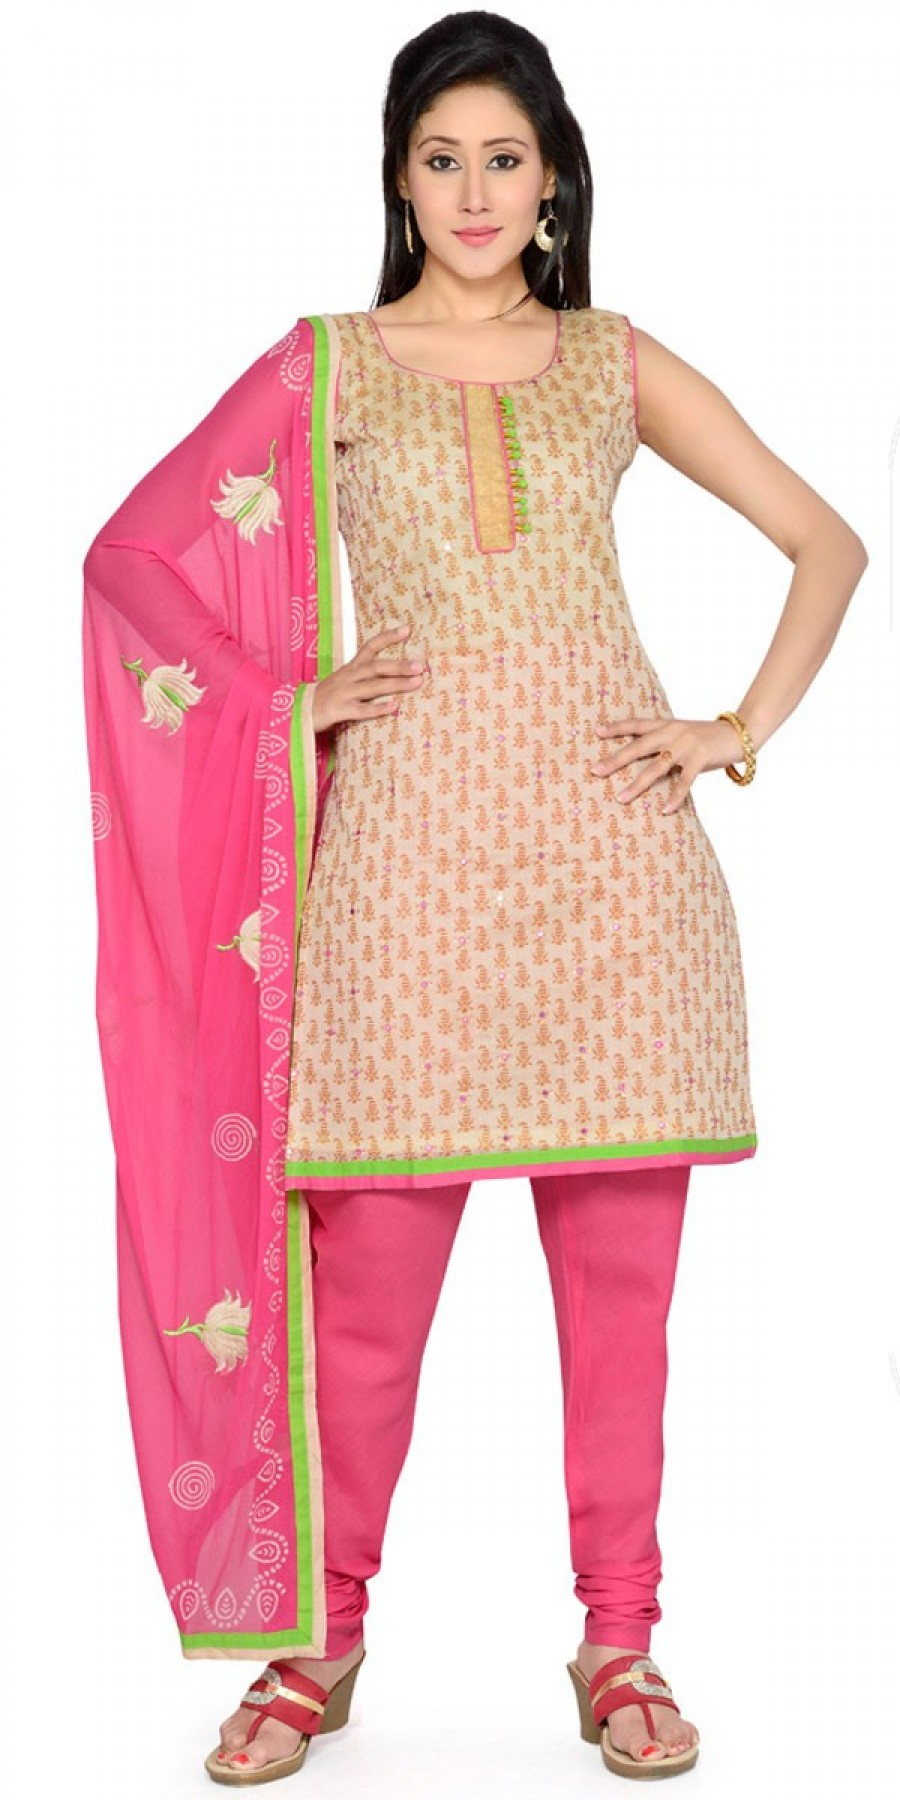 Buy Georgeous Pink And Cream Cotton Salwar Suit With Dupatta. Online